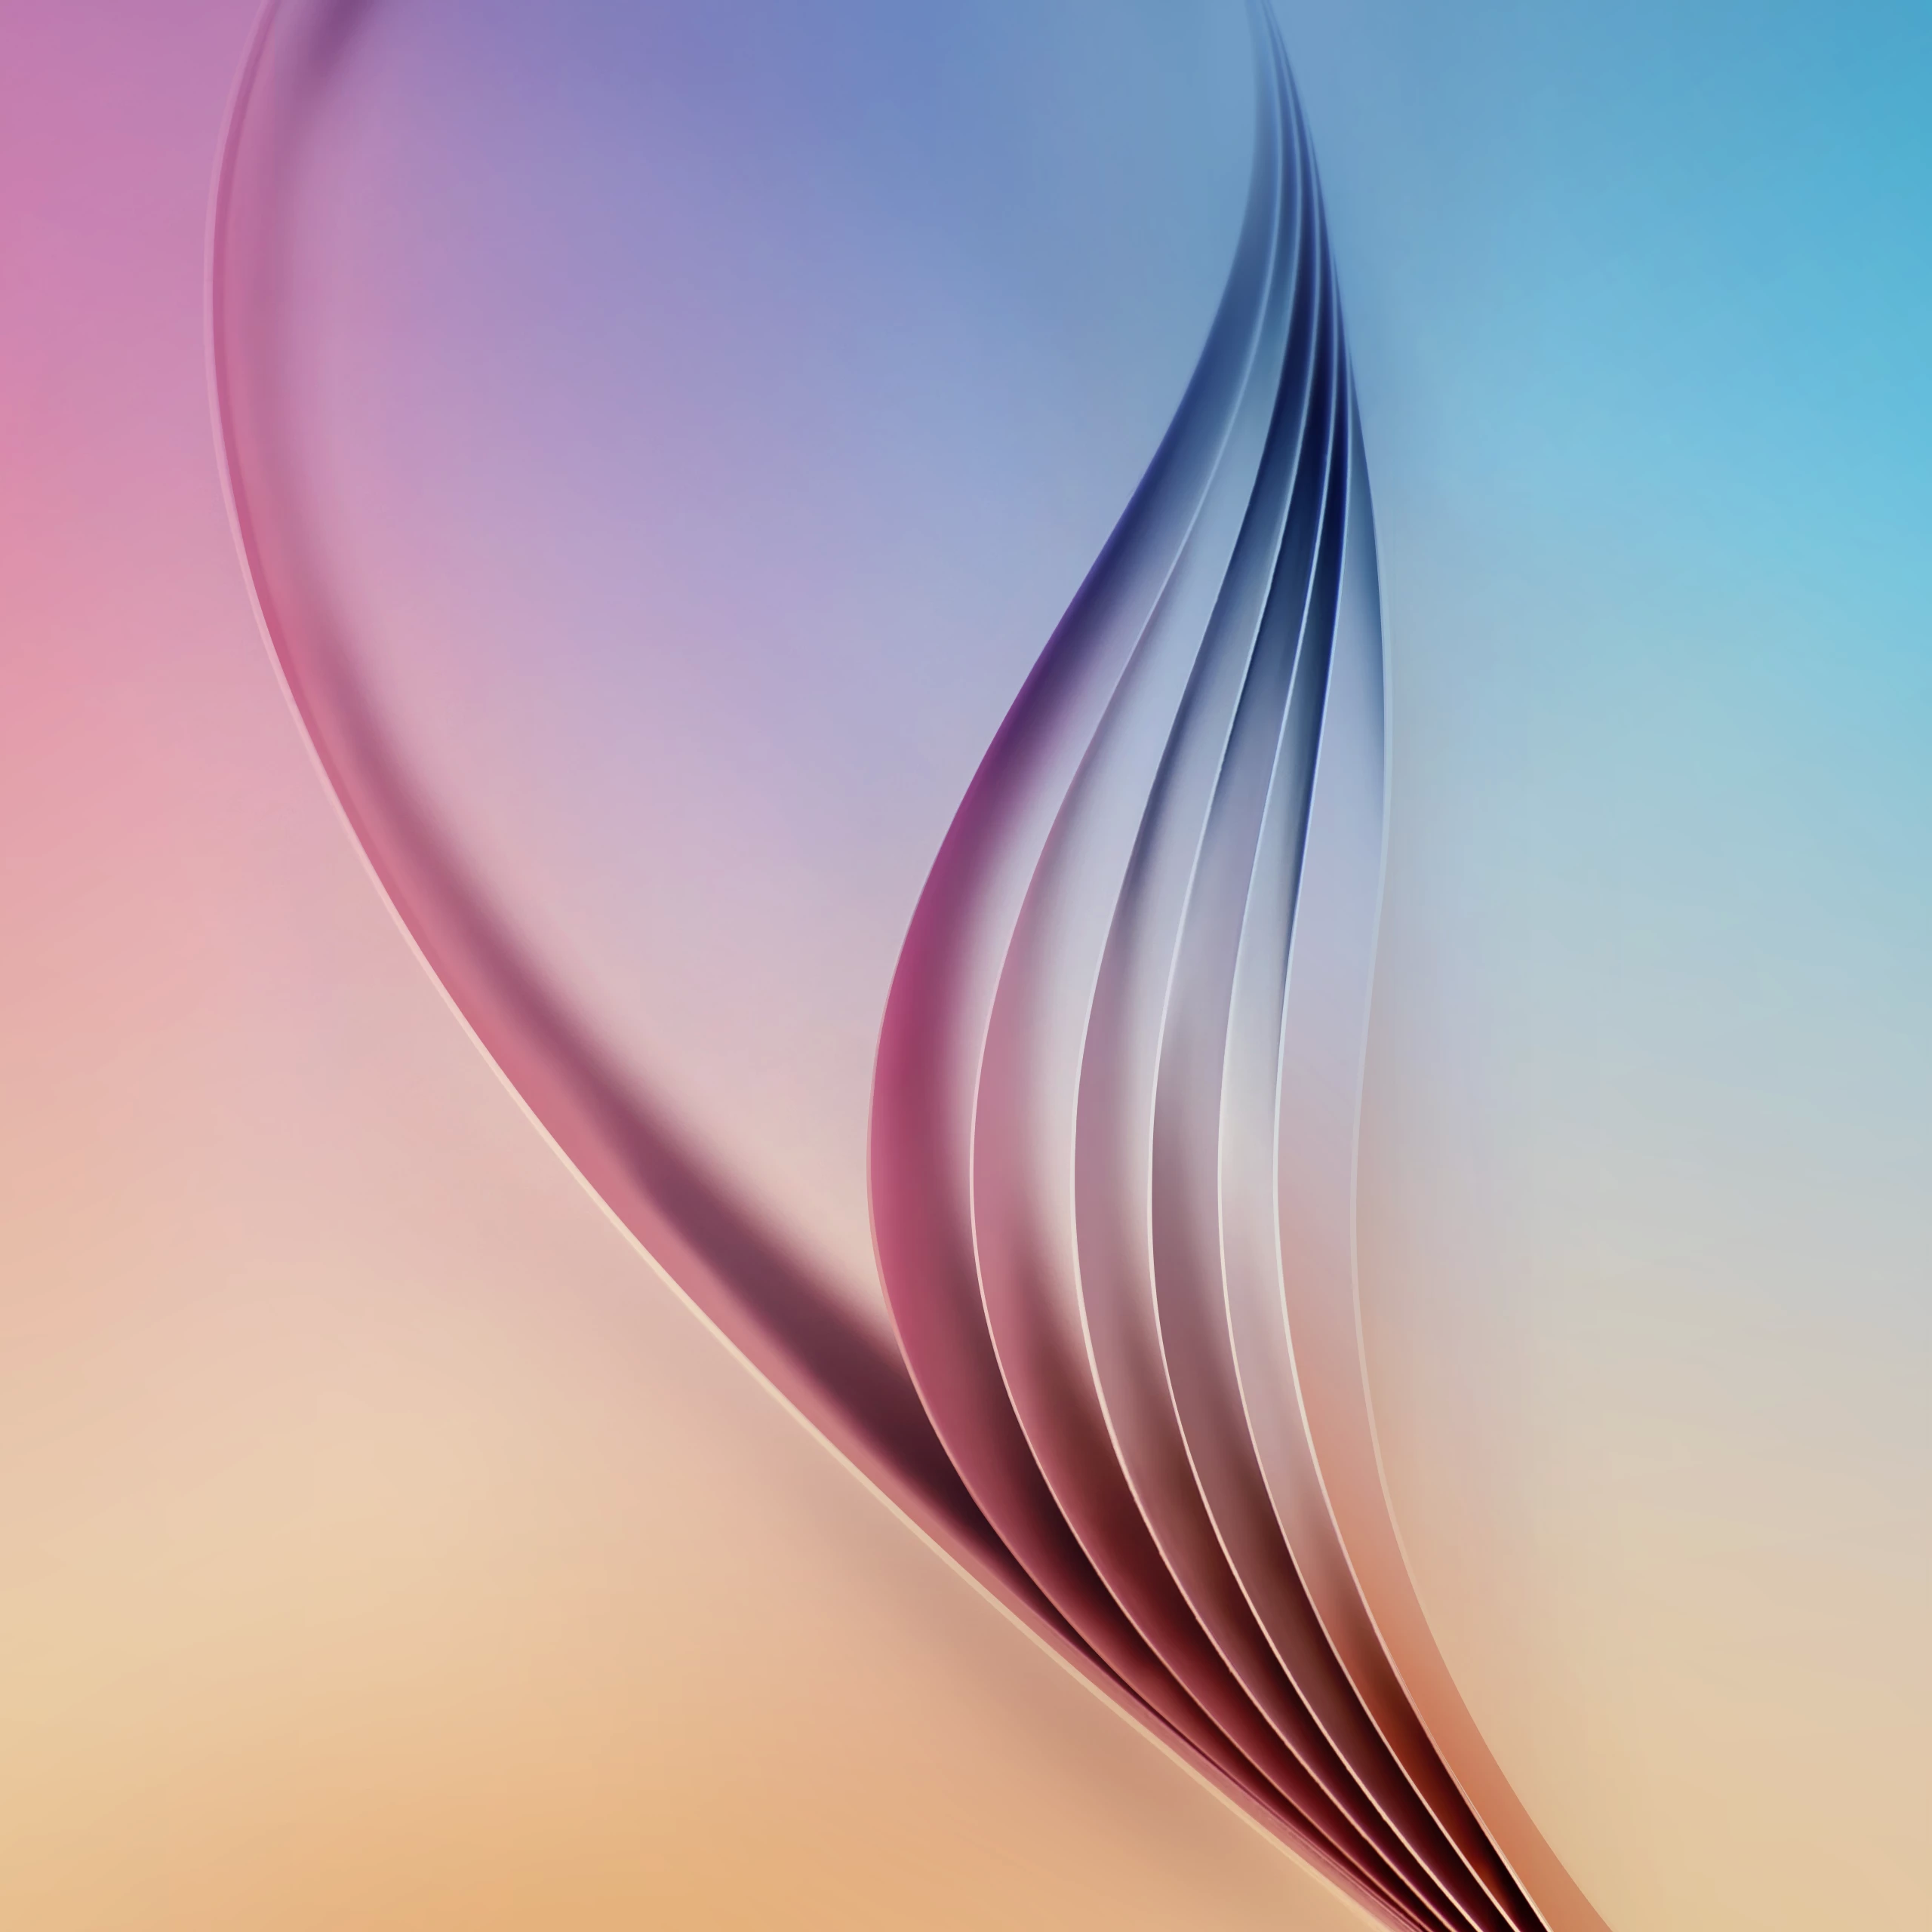 Galaxy Note 5 Wallpapers 08